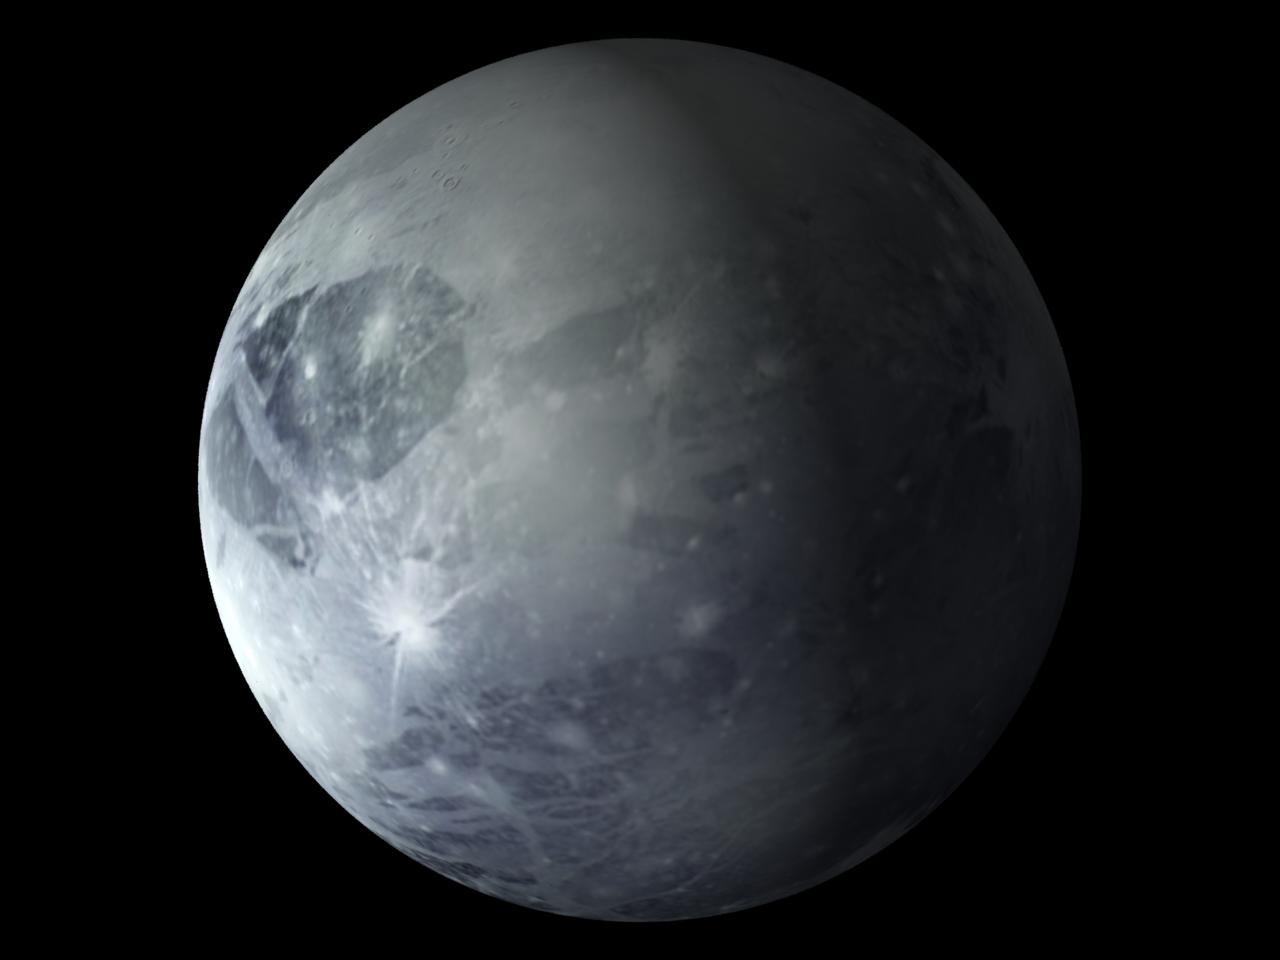 detailed pictures of pluto planet - photo #5